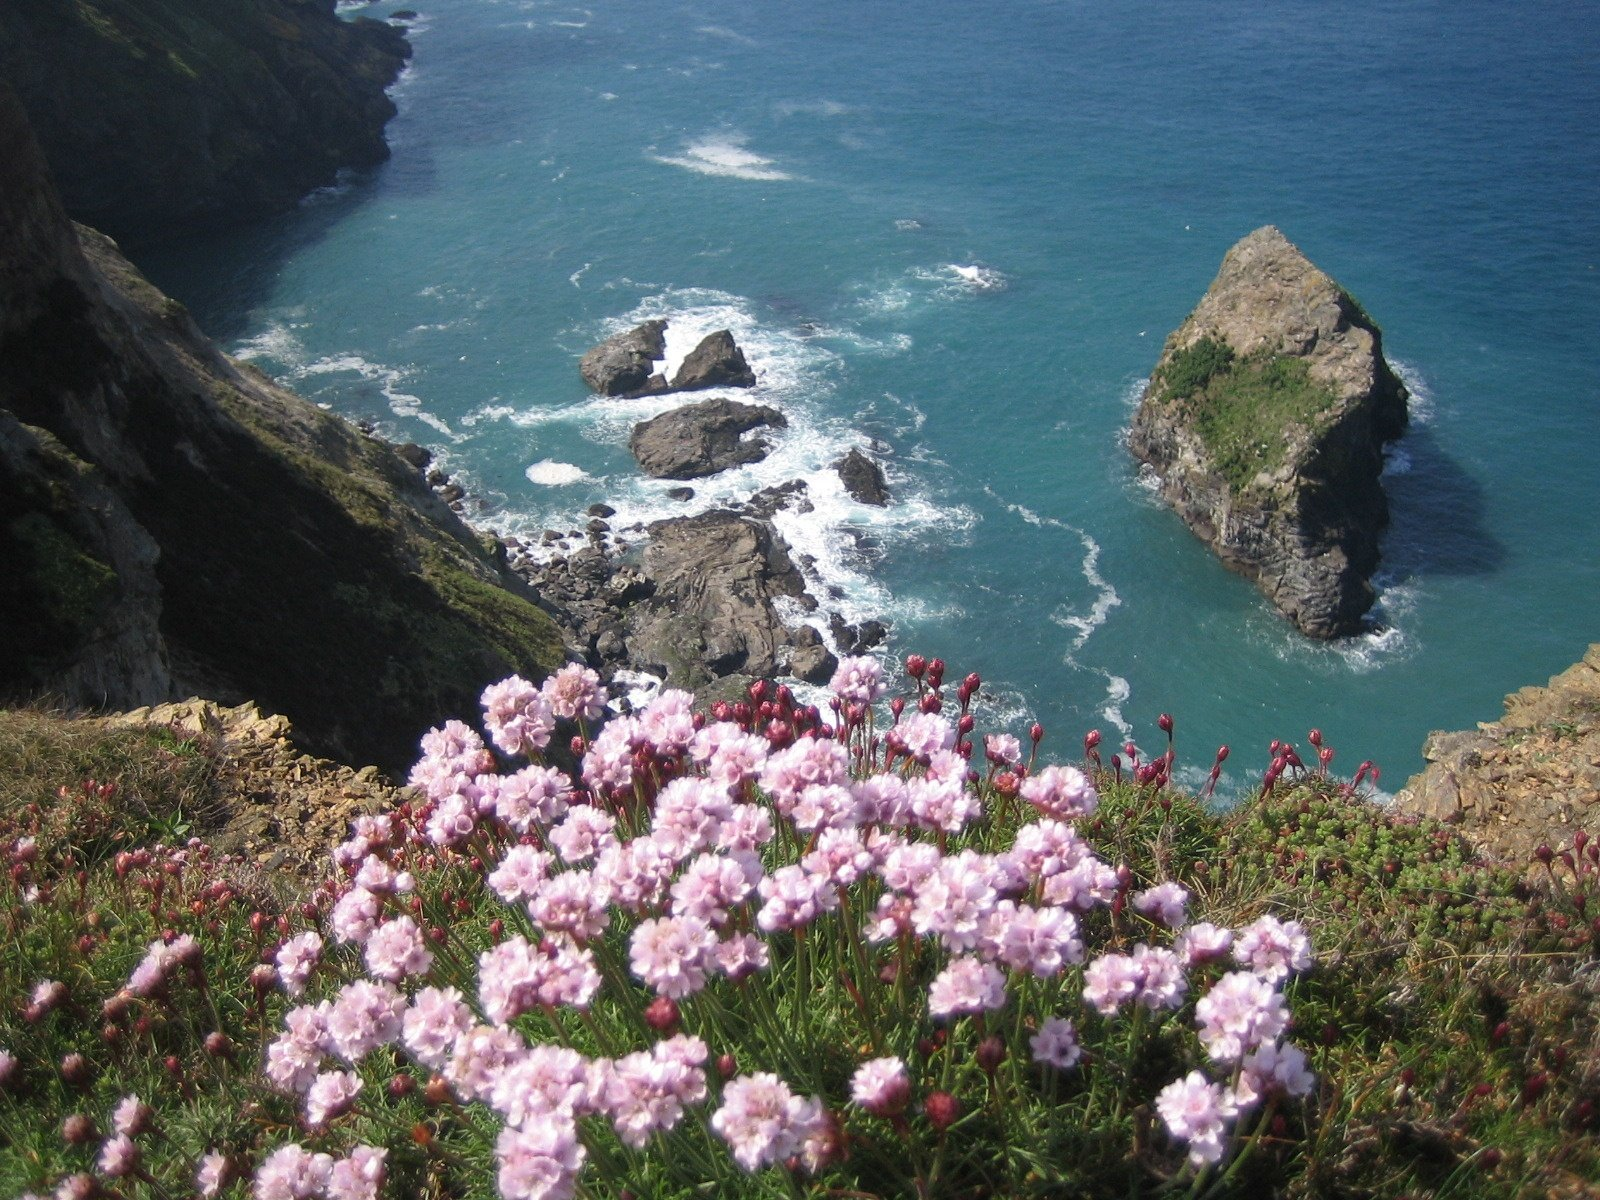 sammy faulkner's photo of St Agnes